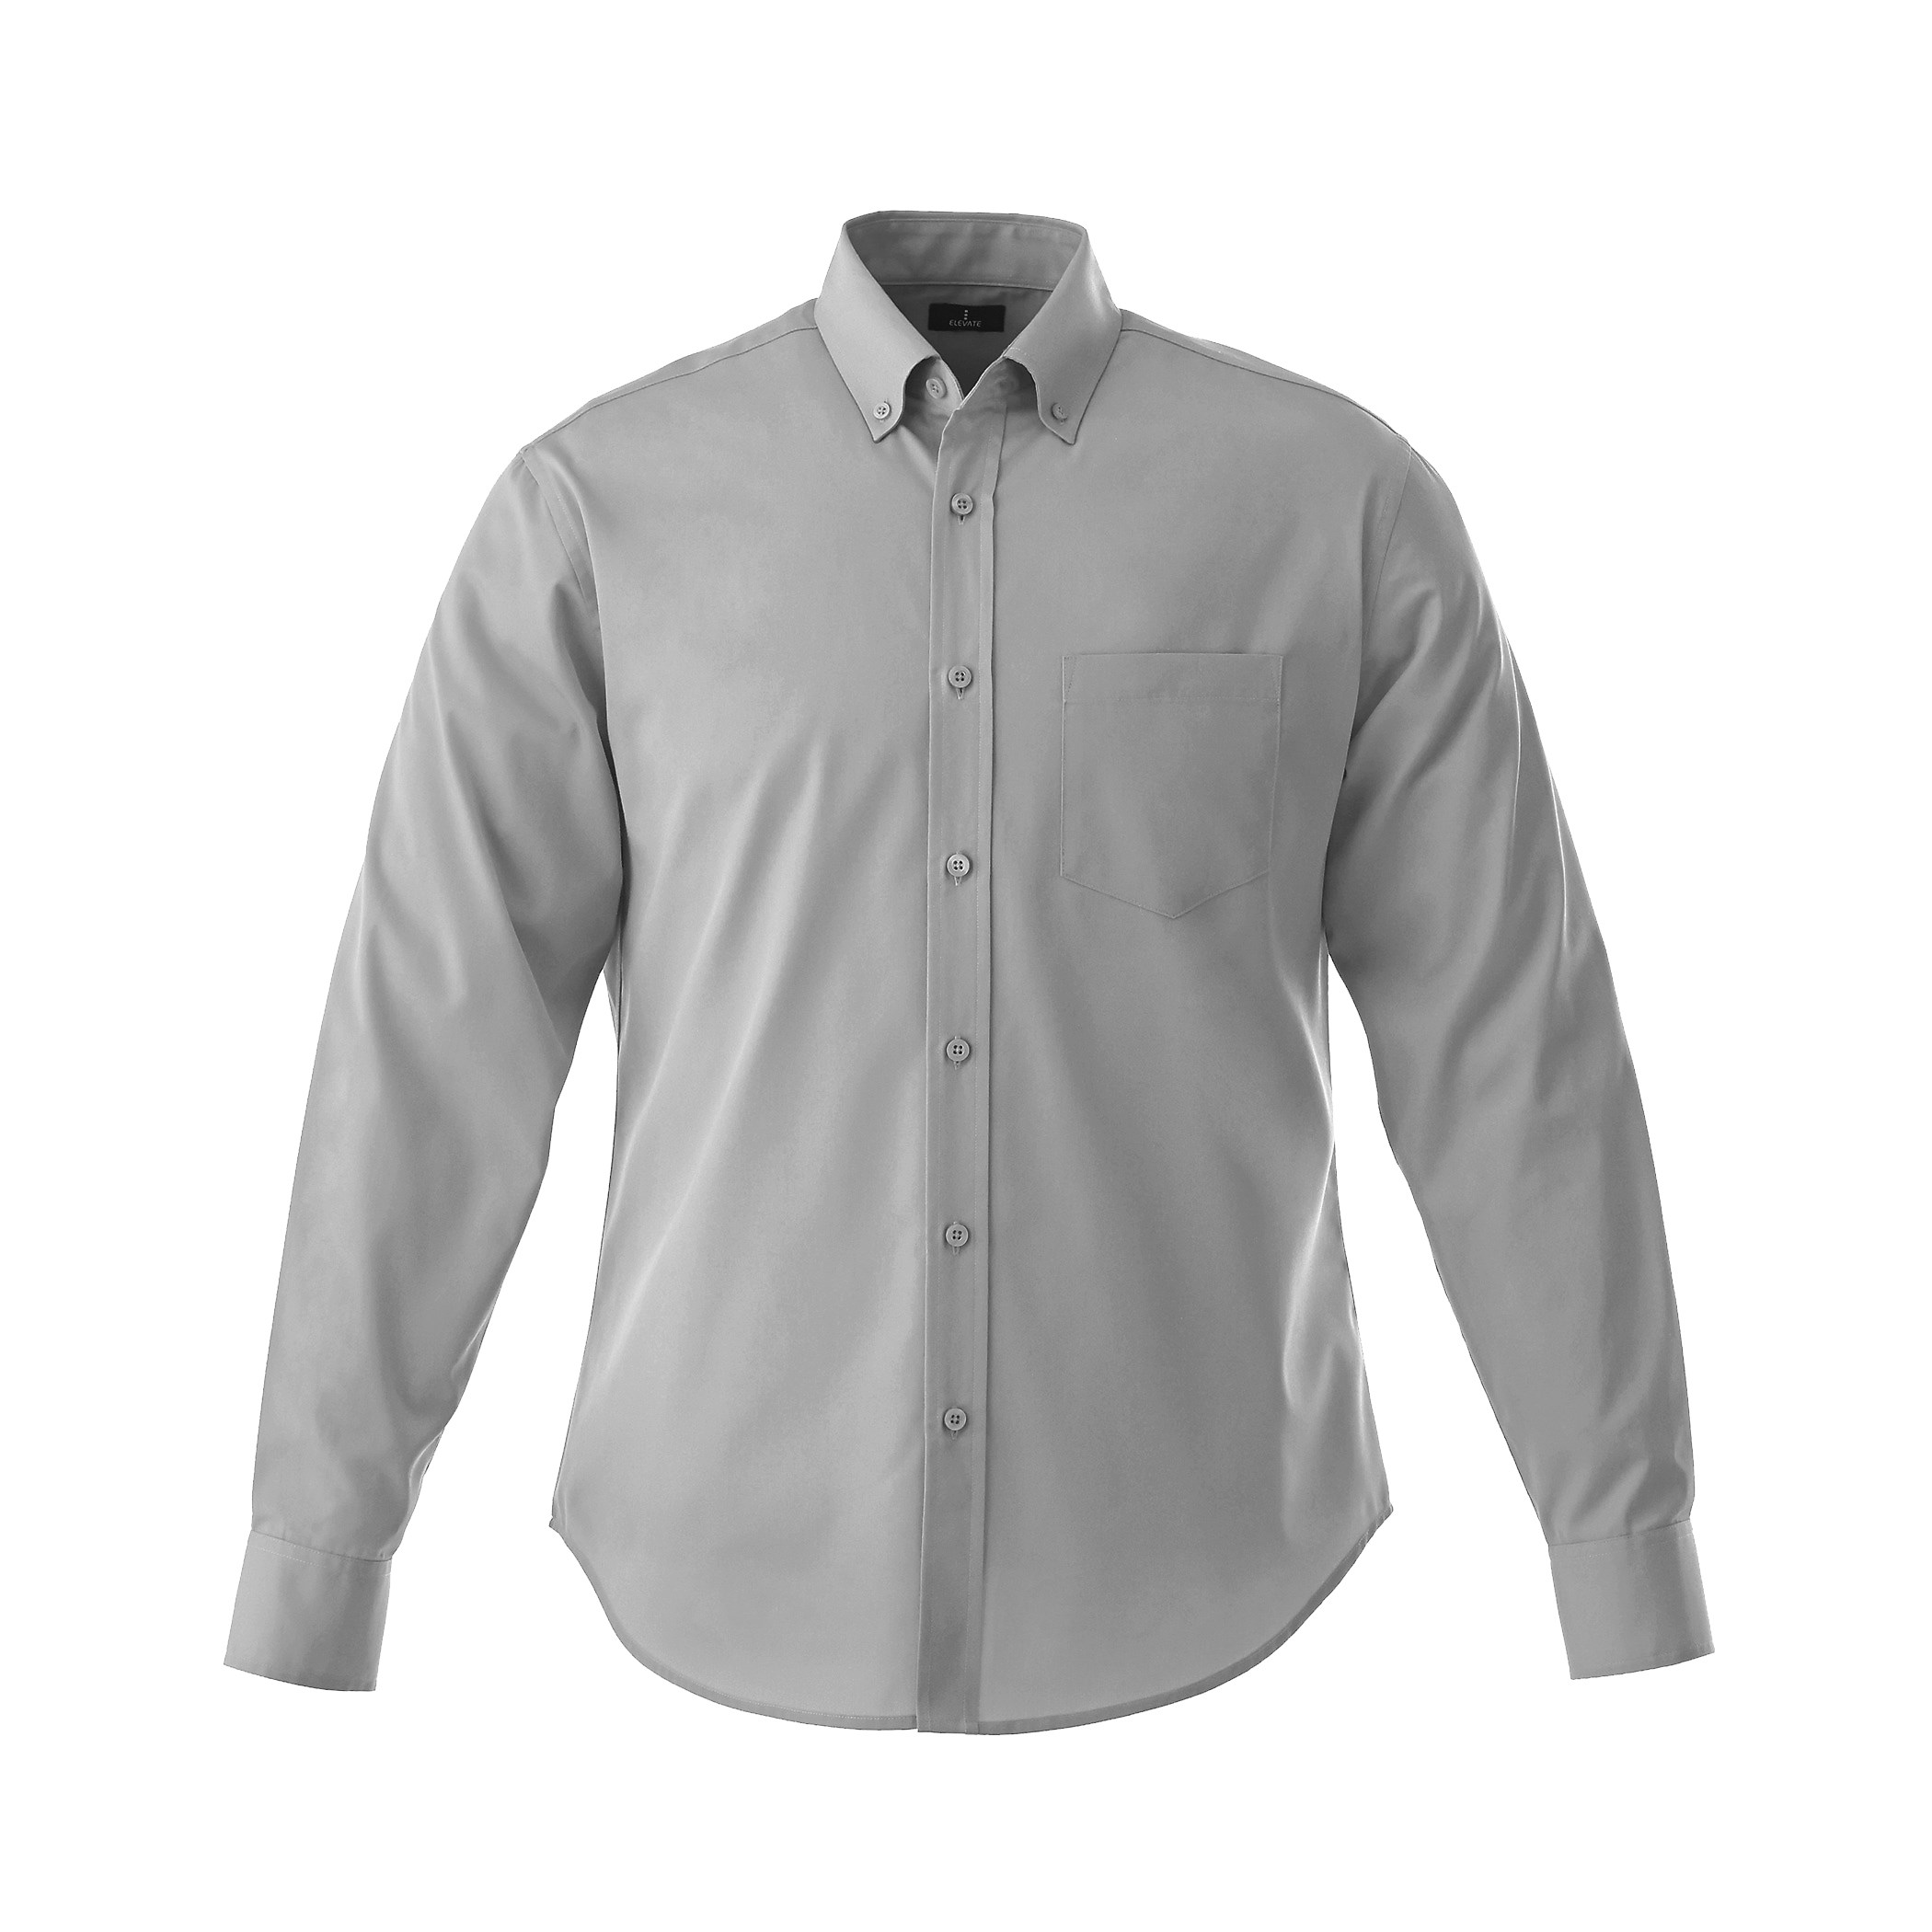 Mens Long Sleeve Wilshire Shirt - Grey Only